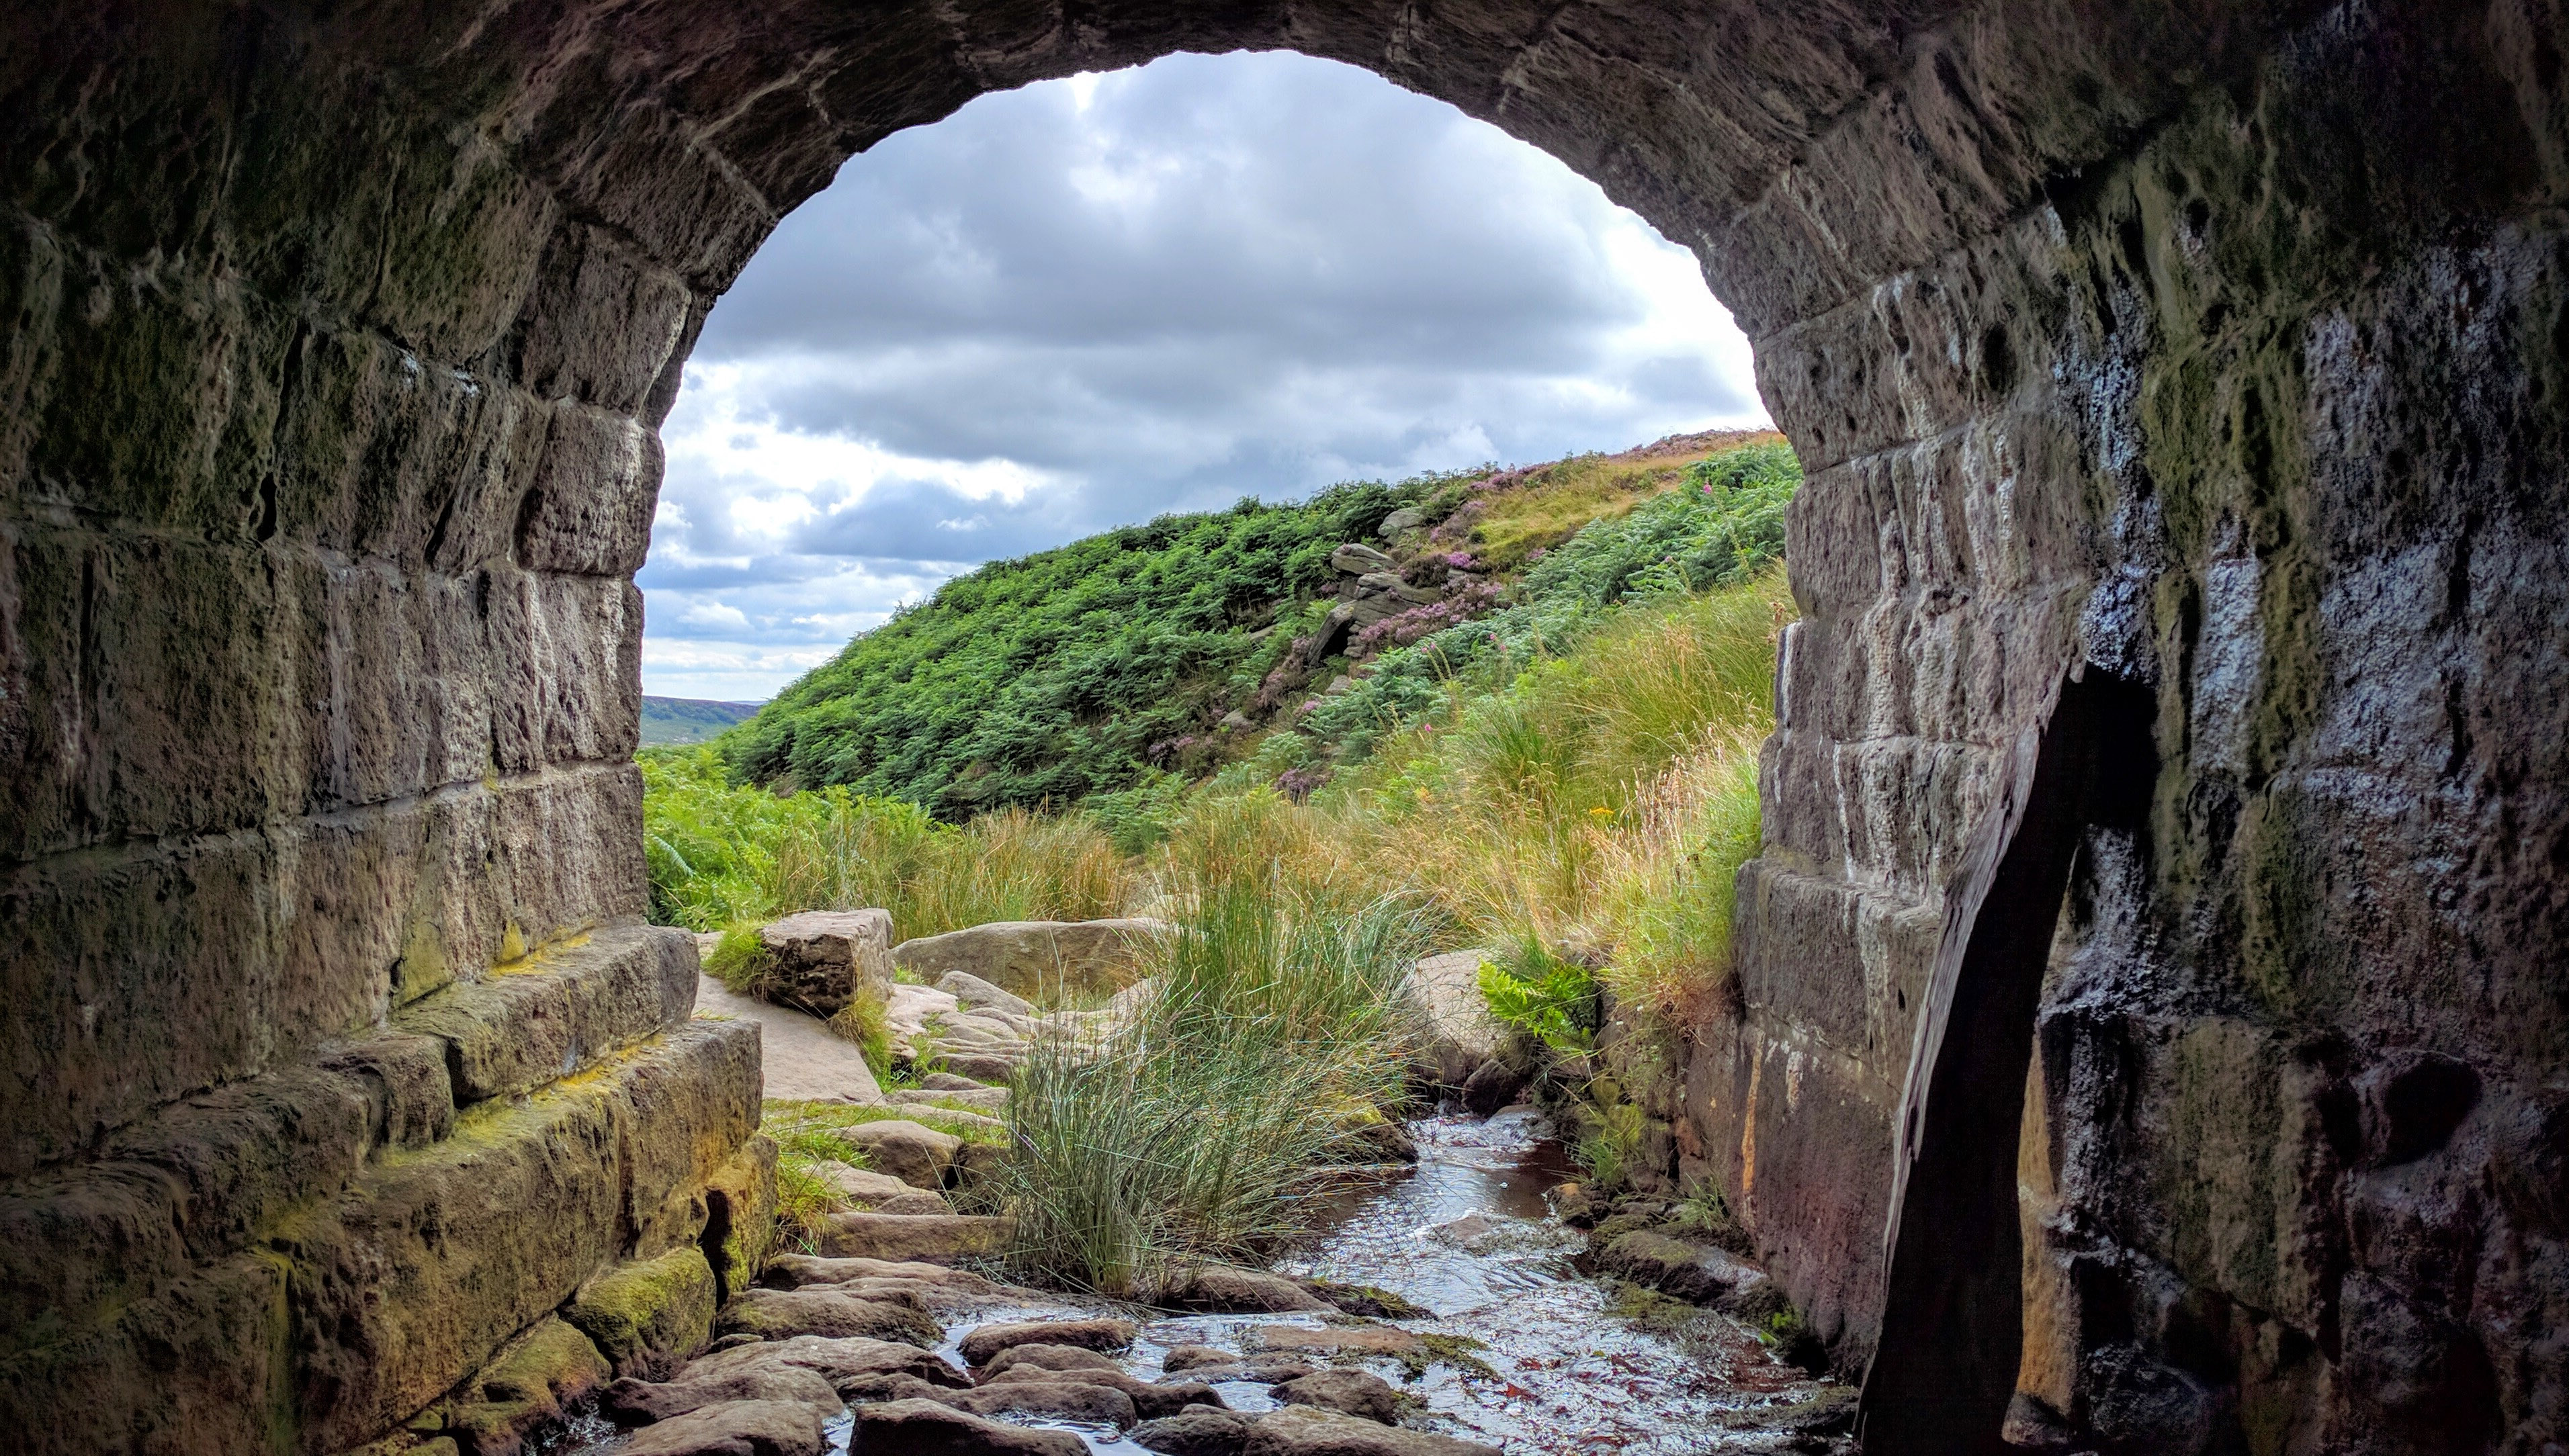 Landscape Of England Through A Tunnel Image Free Stock